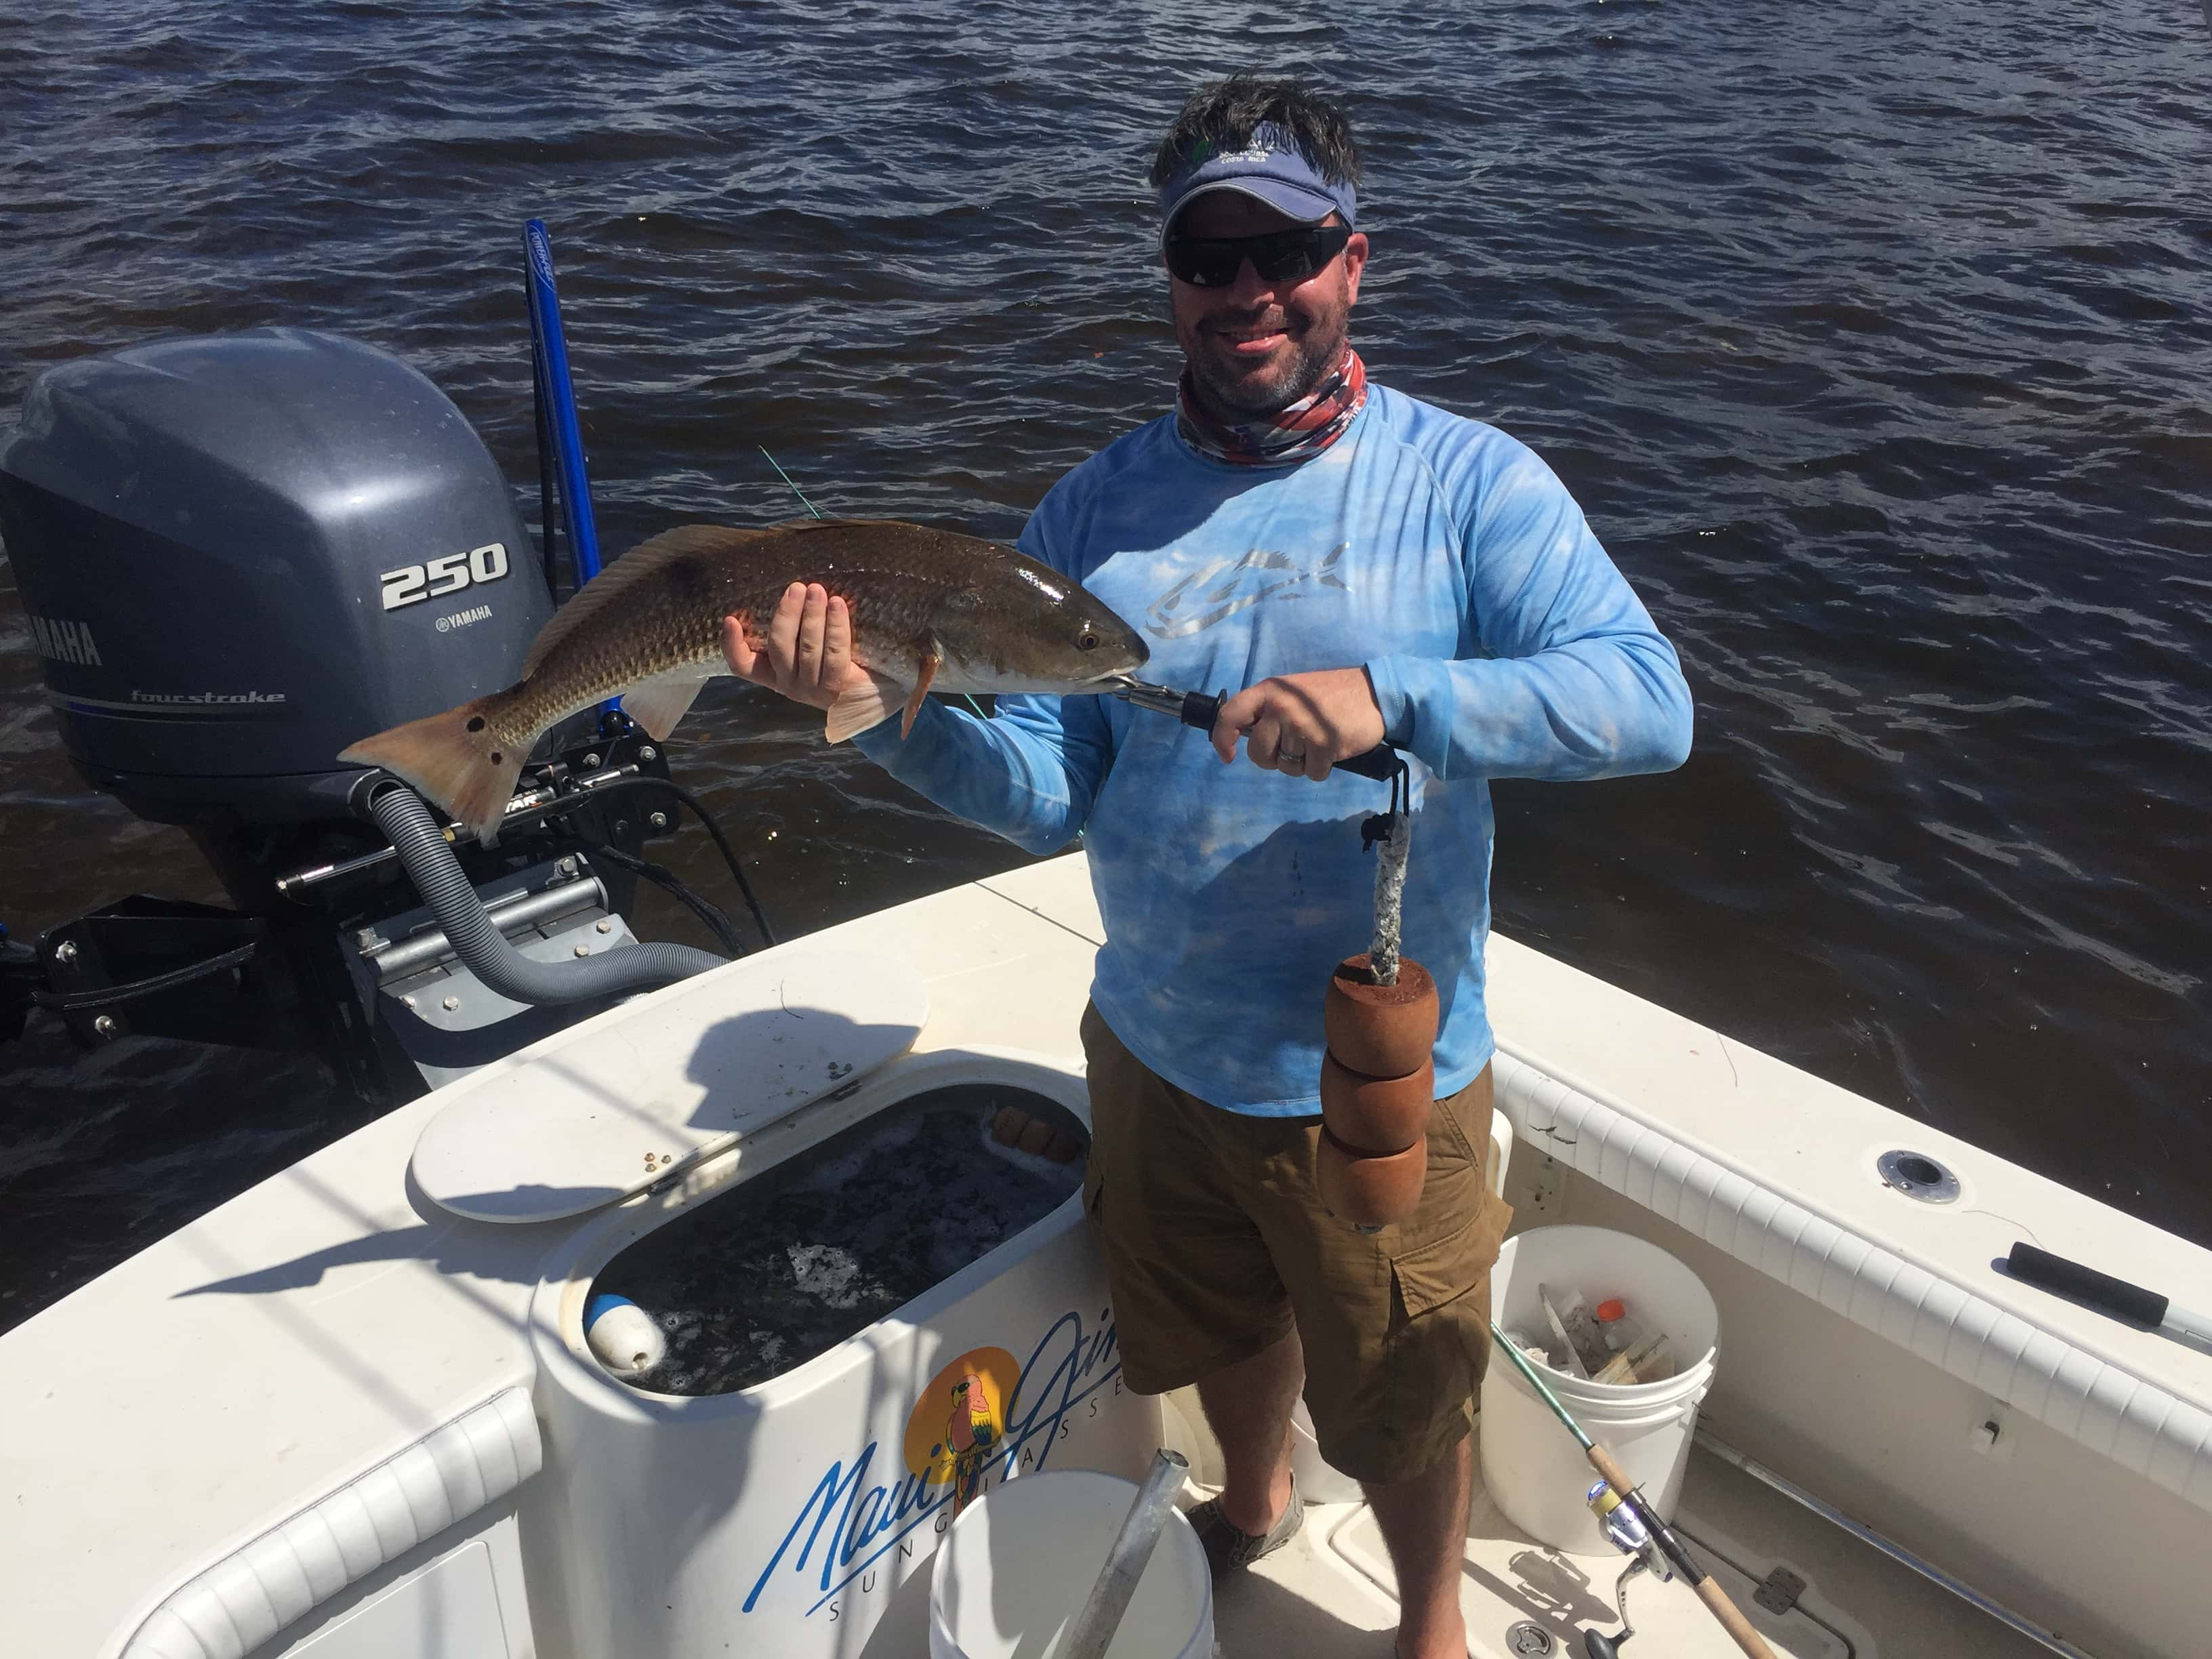 Tampa bay florida fishing charters 813 758 3406 for Tampa florida fishing charters